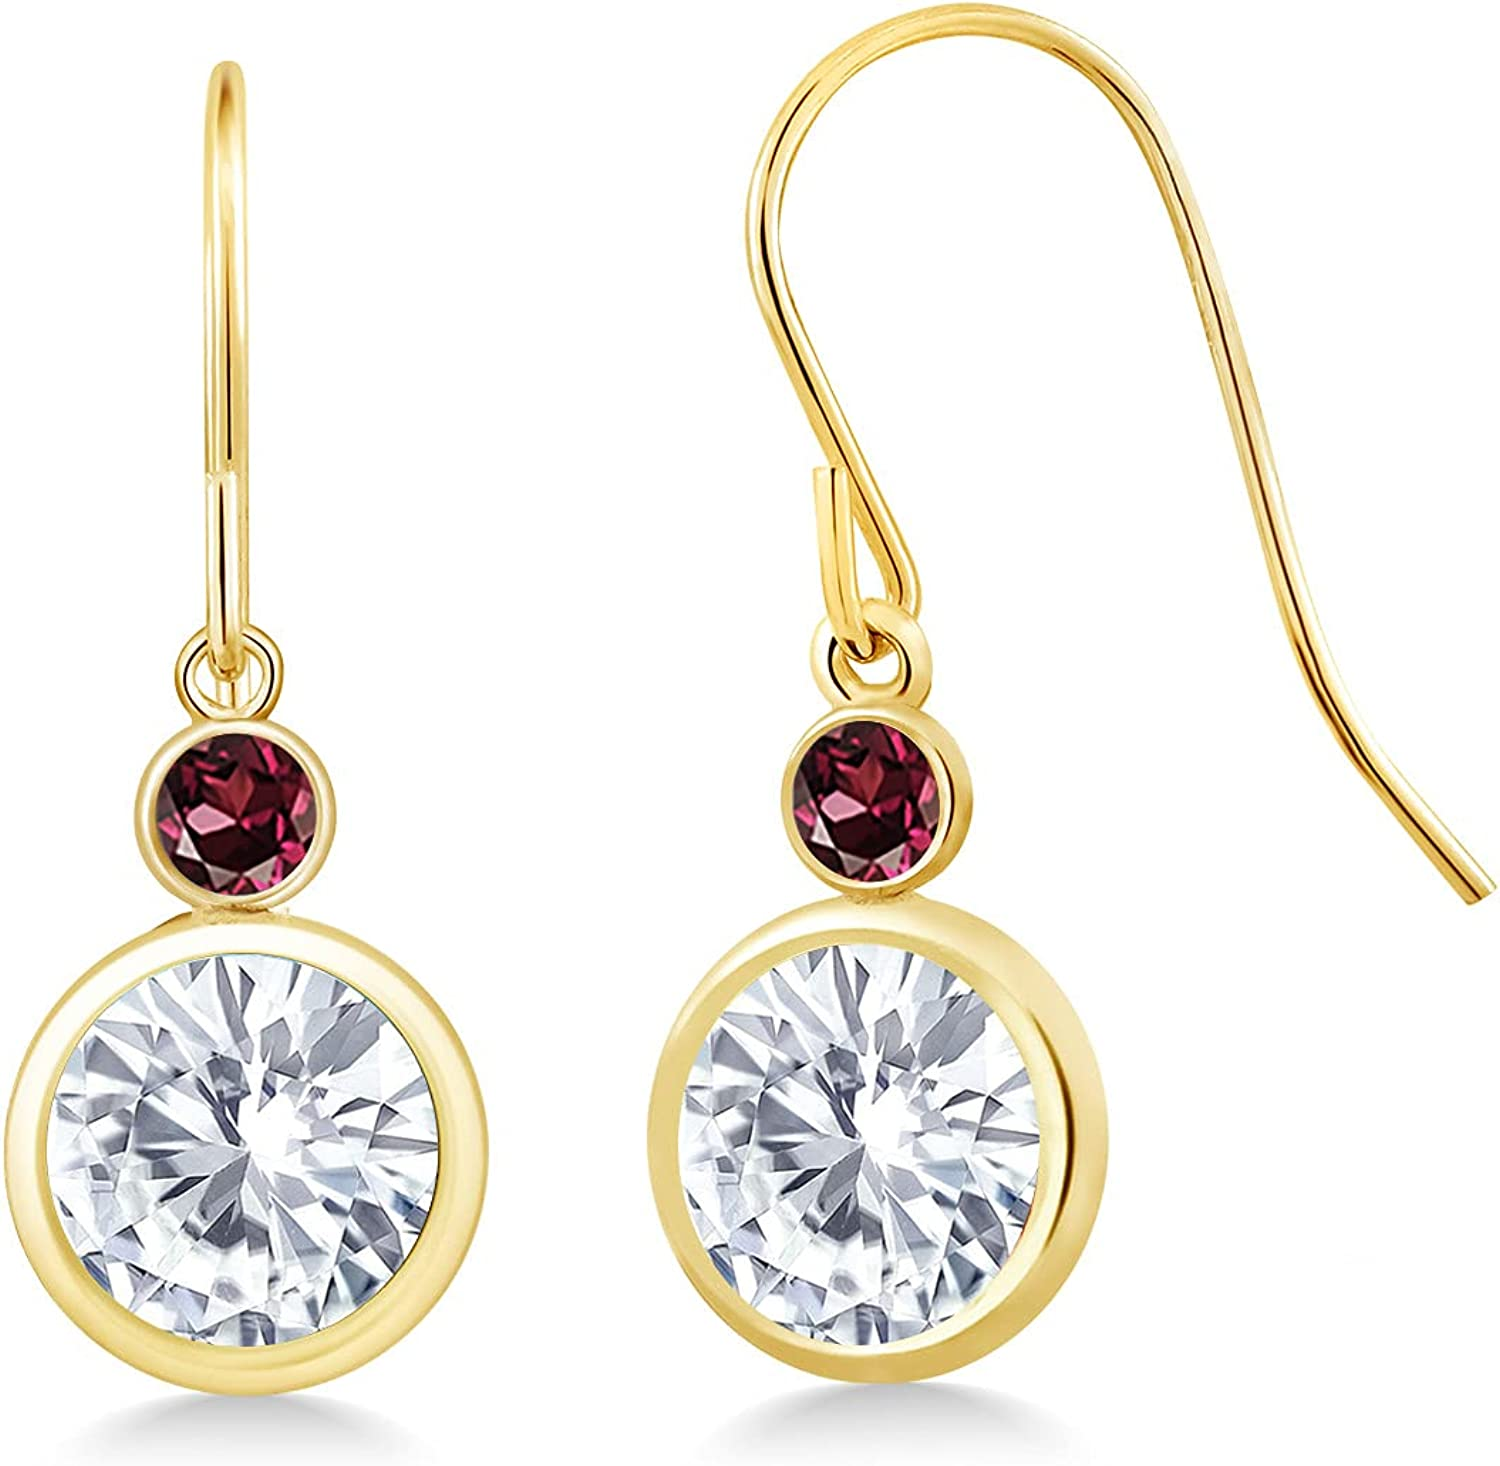 14K Yellow Gold Max 72% OFF Dangle Earrings Set Round Forever with One GHI Atlanta Mall